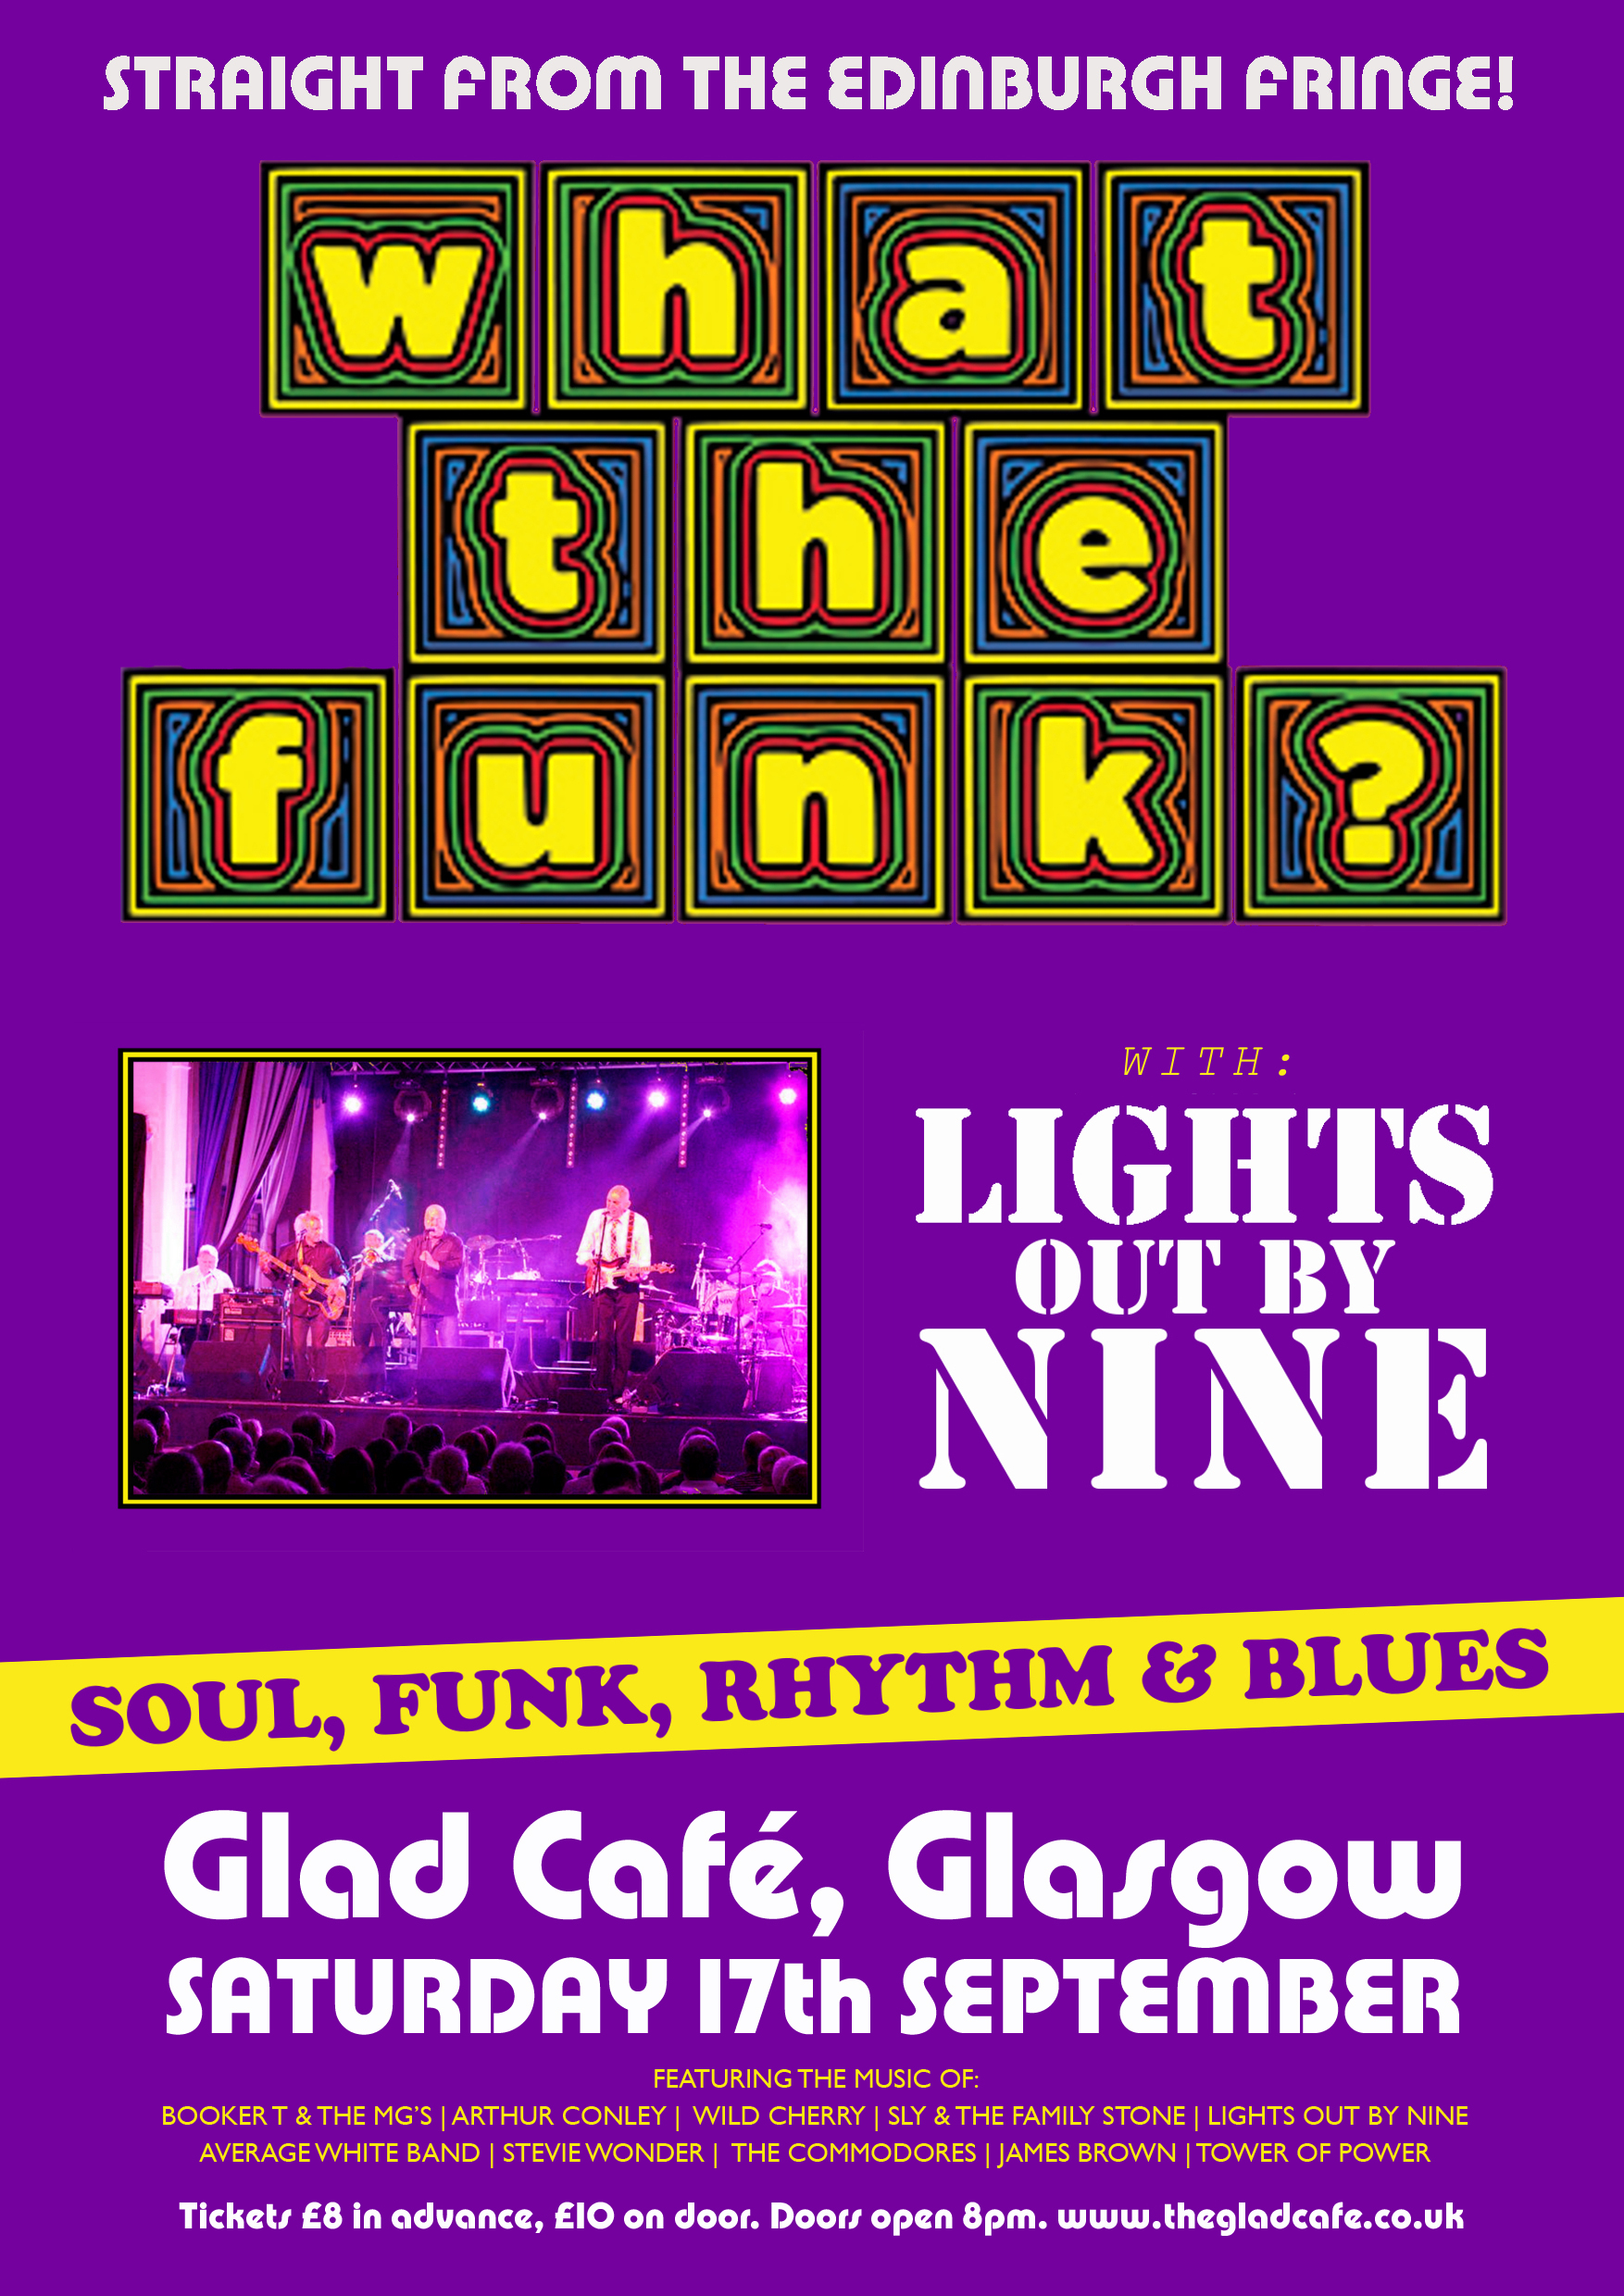 What The Funk? with Lights Out By Nine - Straight From the Edinburgh Fringe